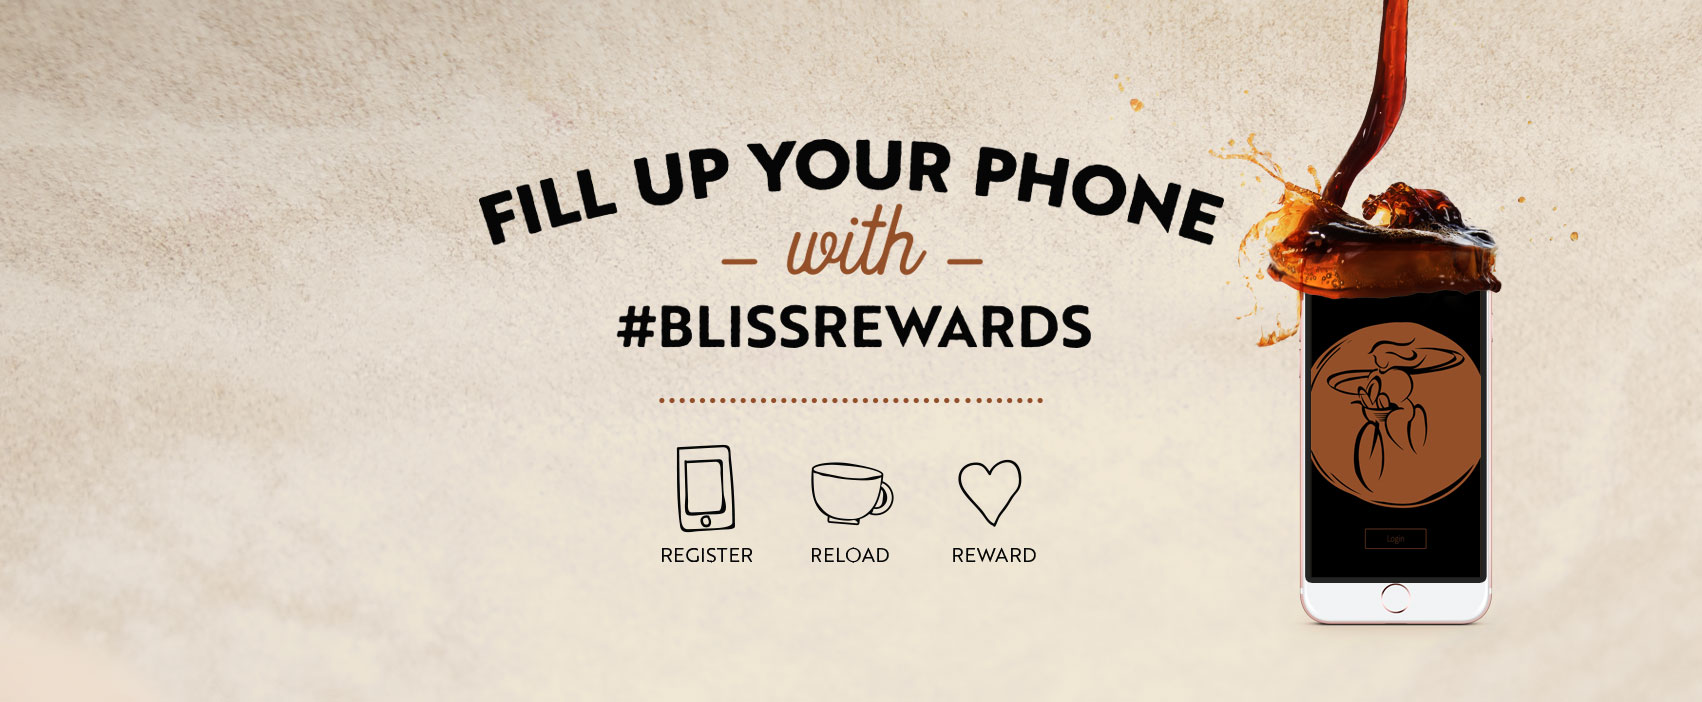 Brandnetic Marketing Campaign For Bliss Loyalty Program